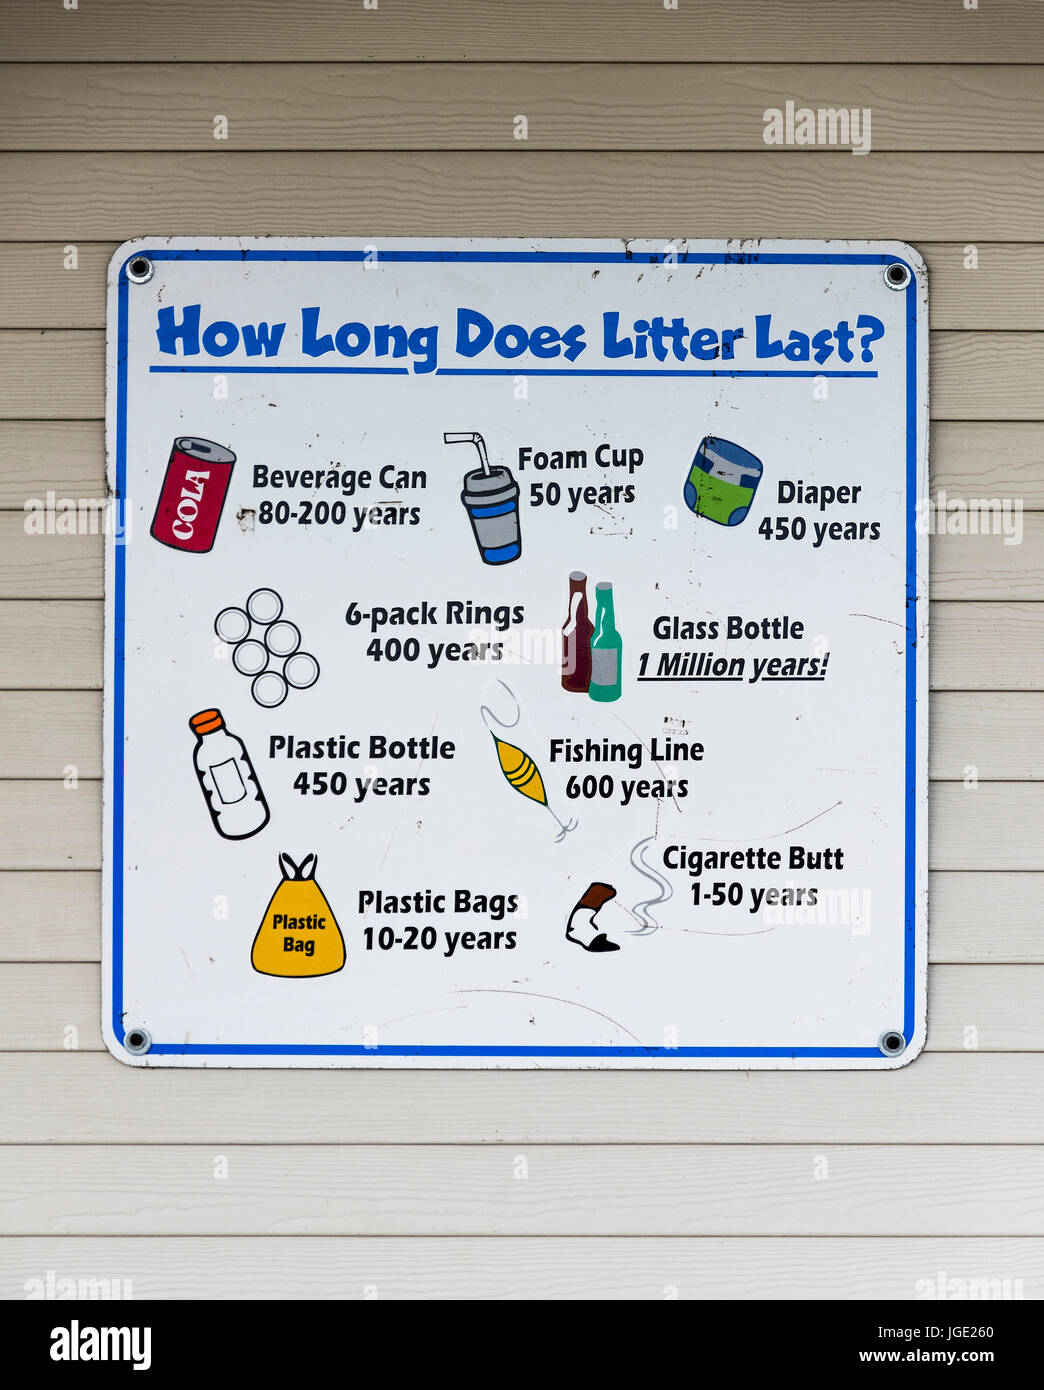 Litter education and prevention sign. - Stock Image